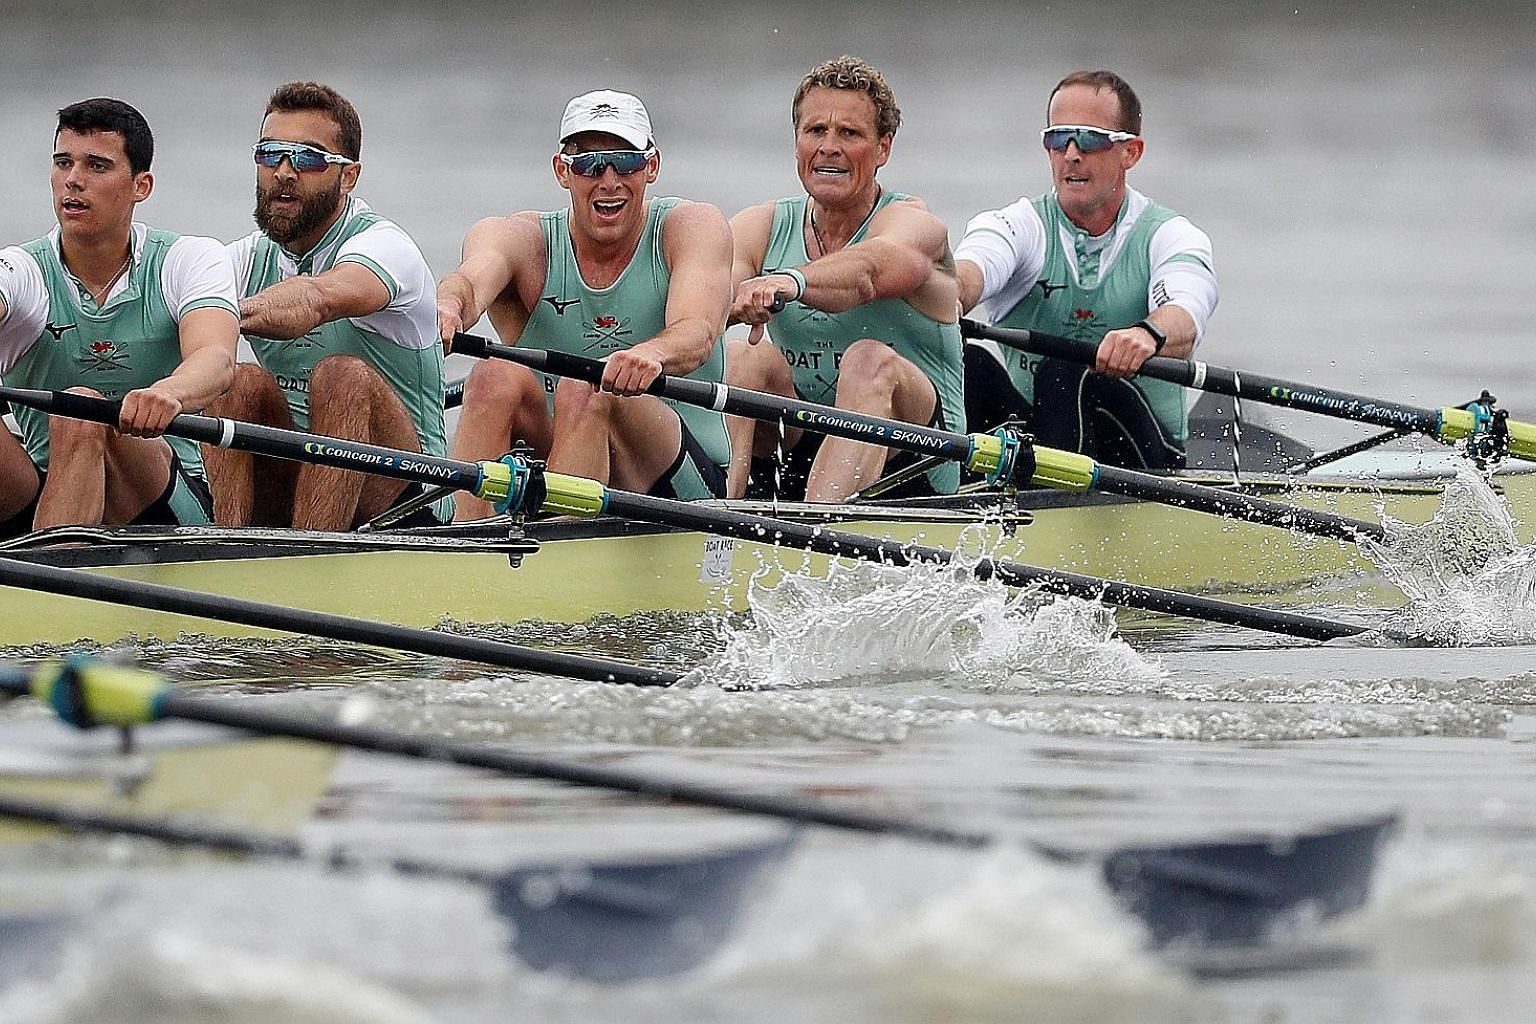 Cambridge's James Cracknell (second from right) during the Boat Race, which his team won by a length. The 46-year-old, a two-time Olympic champion and six-time world champion, is the oldest man by far to row in the event.